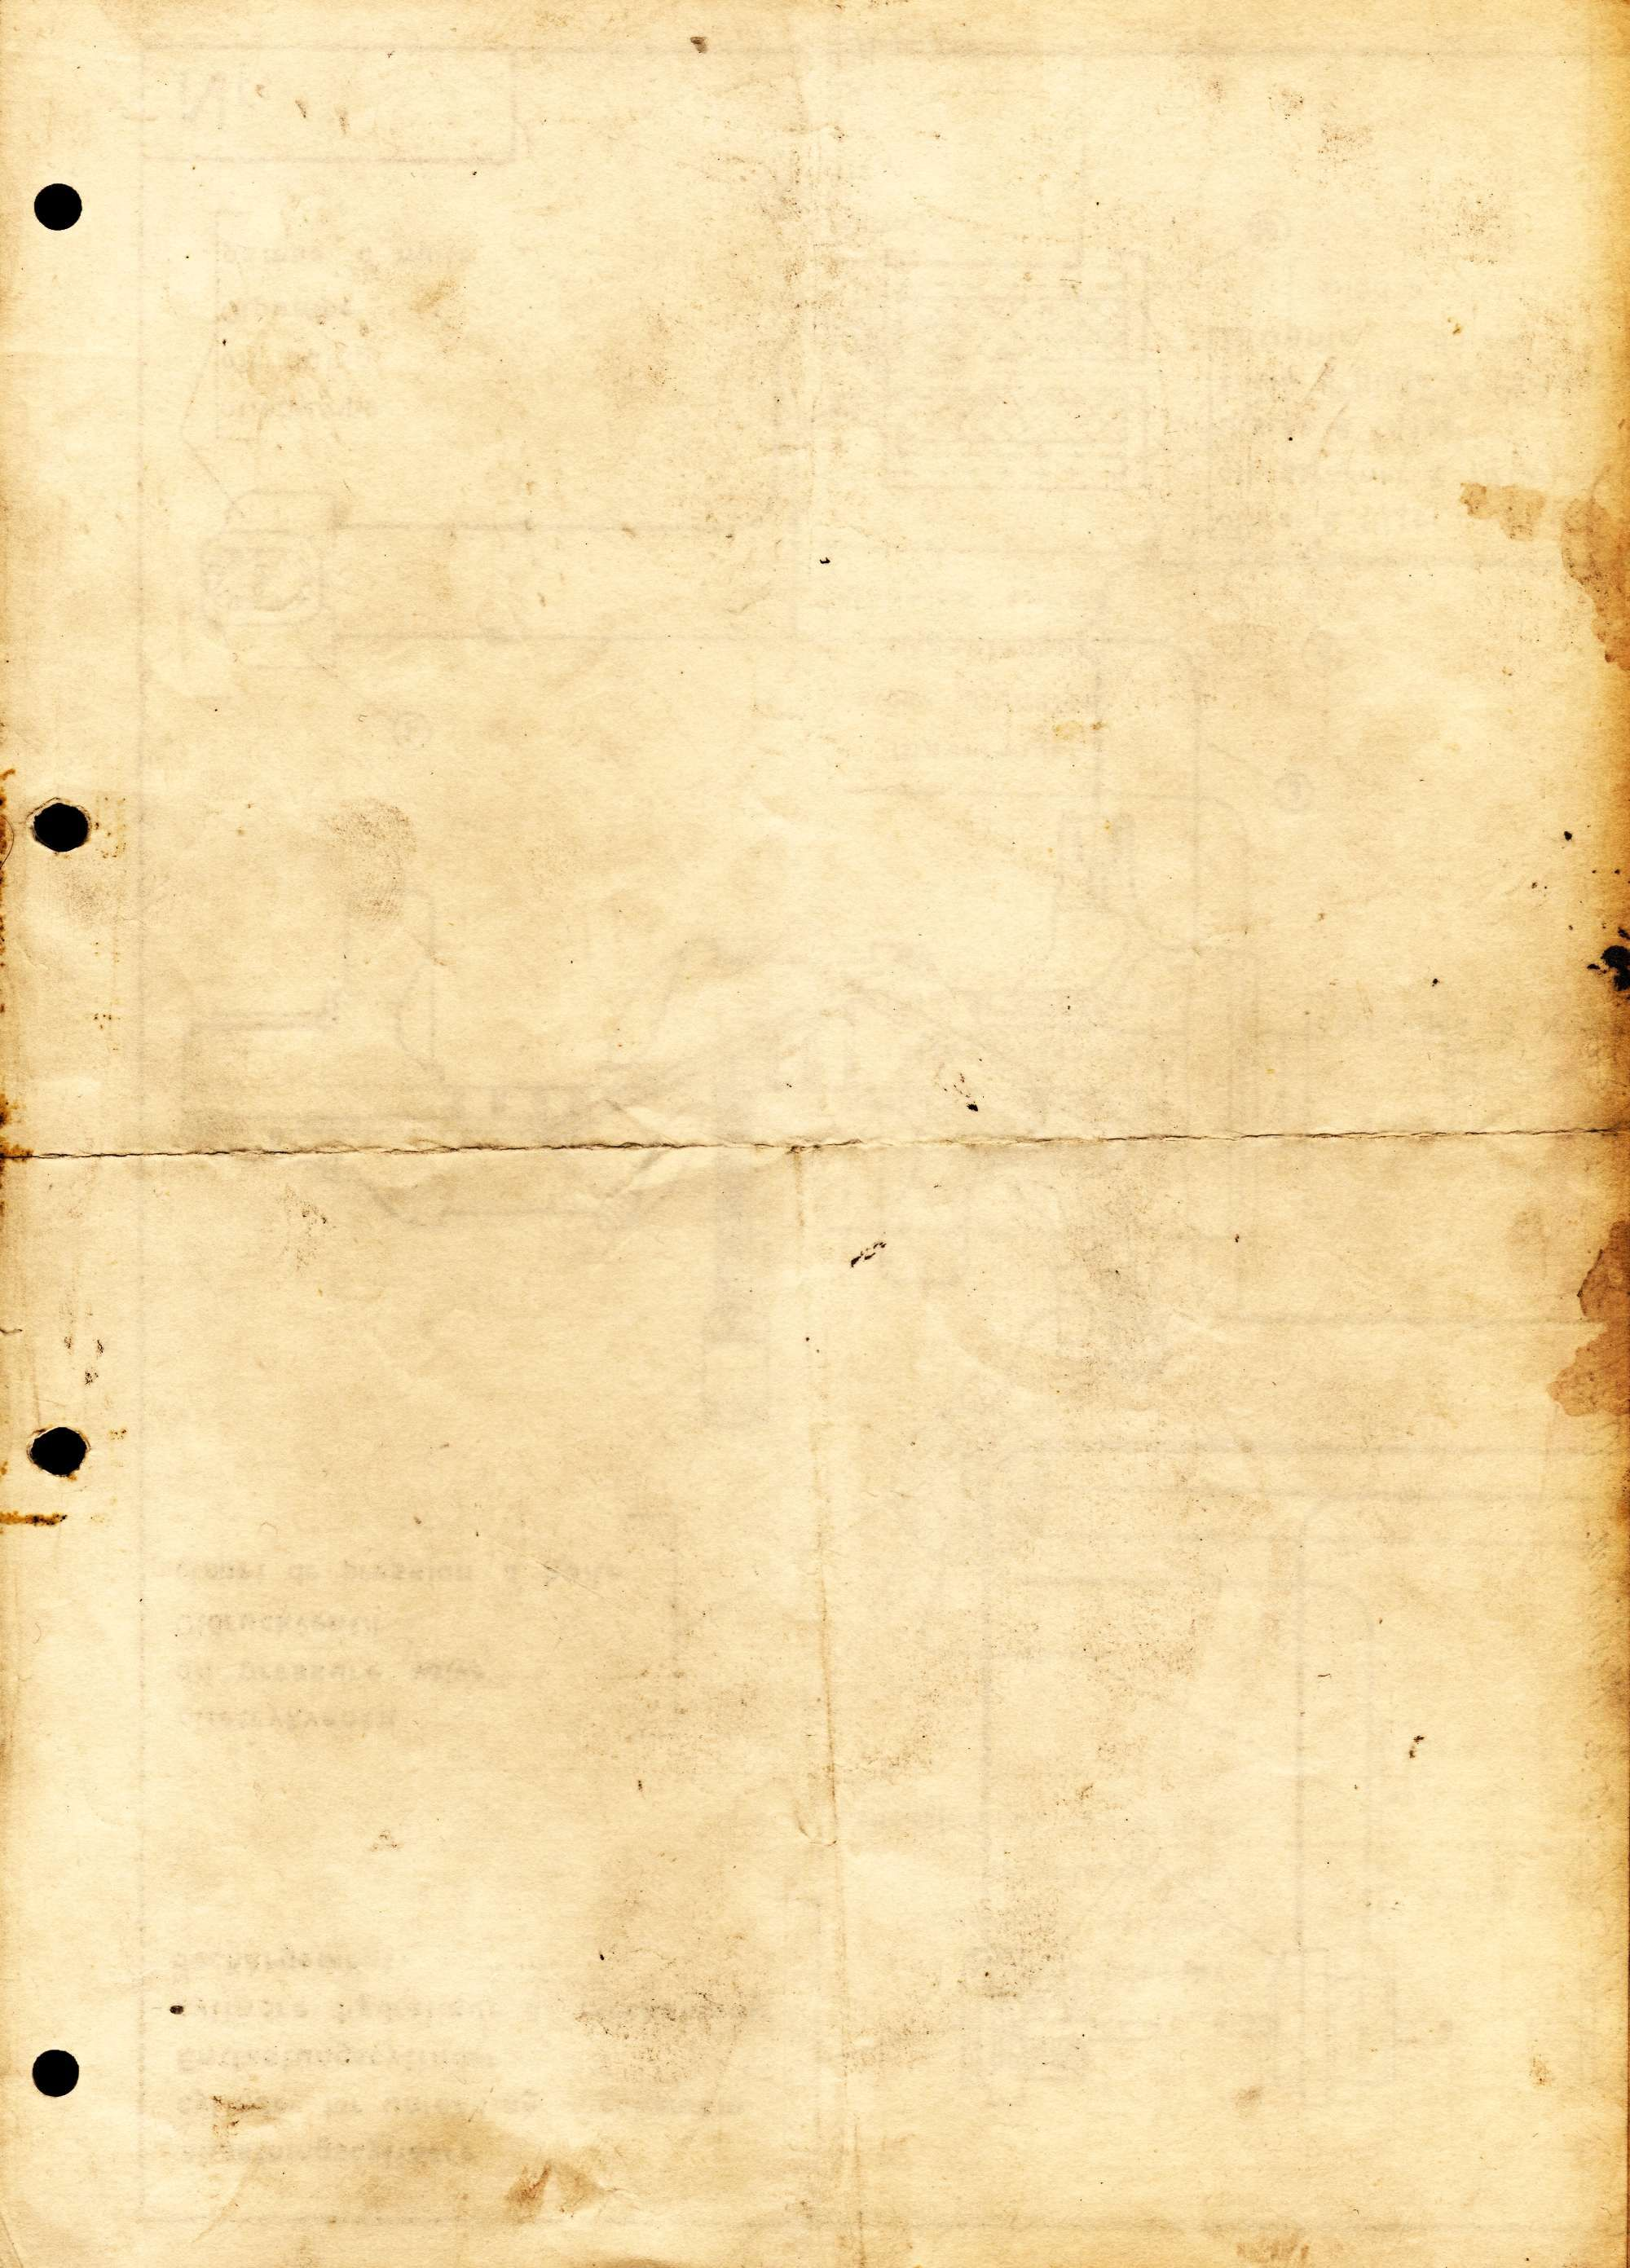 Victorian Or Steampunk Paper By Icaramello On Deviantart Paper Background Design Old Paper Background Paper Background